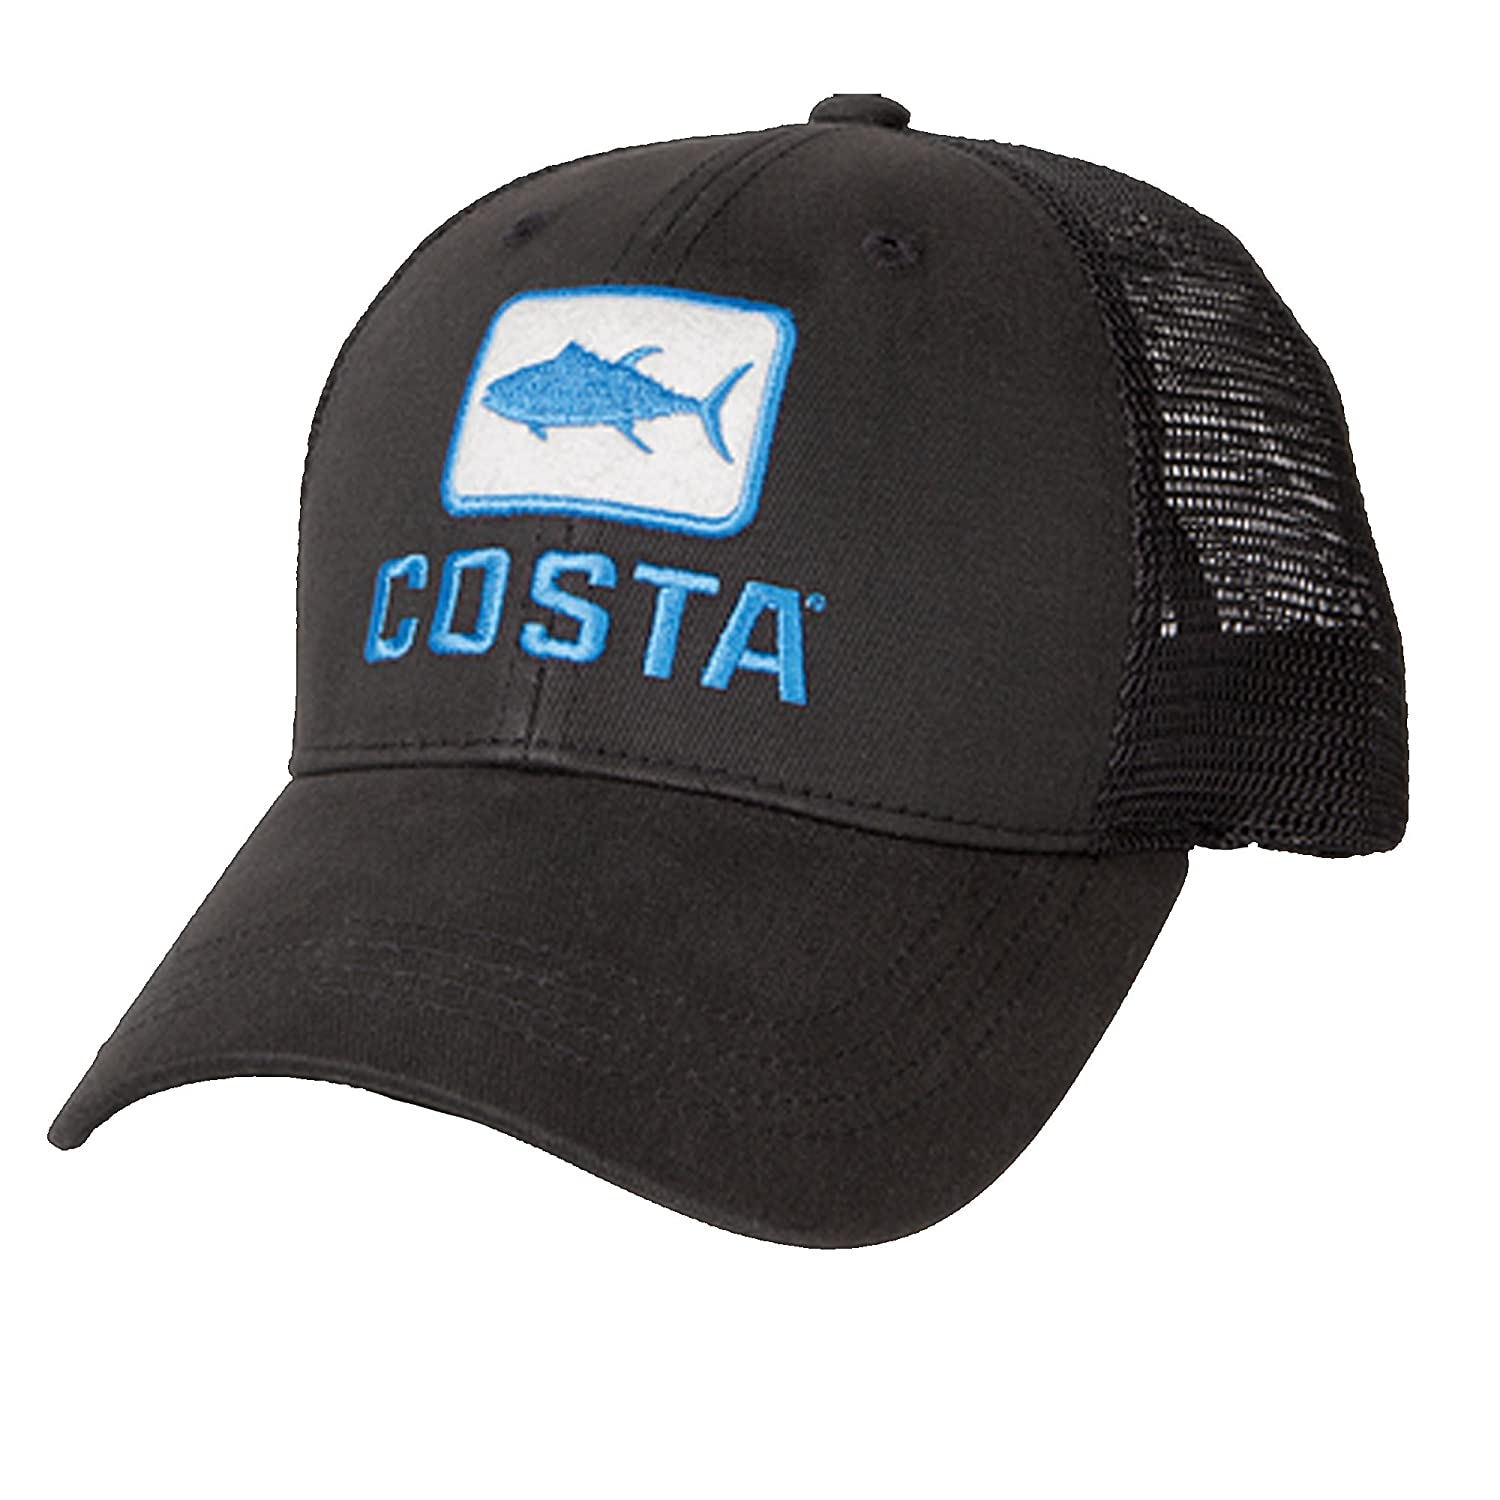 e0c2018e2 Costa Del Mar Tuna Trucker Hat